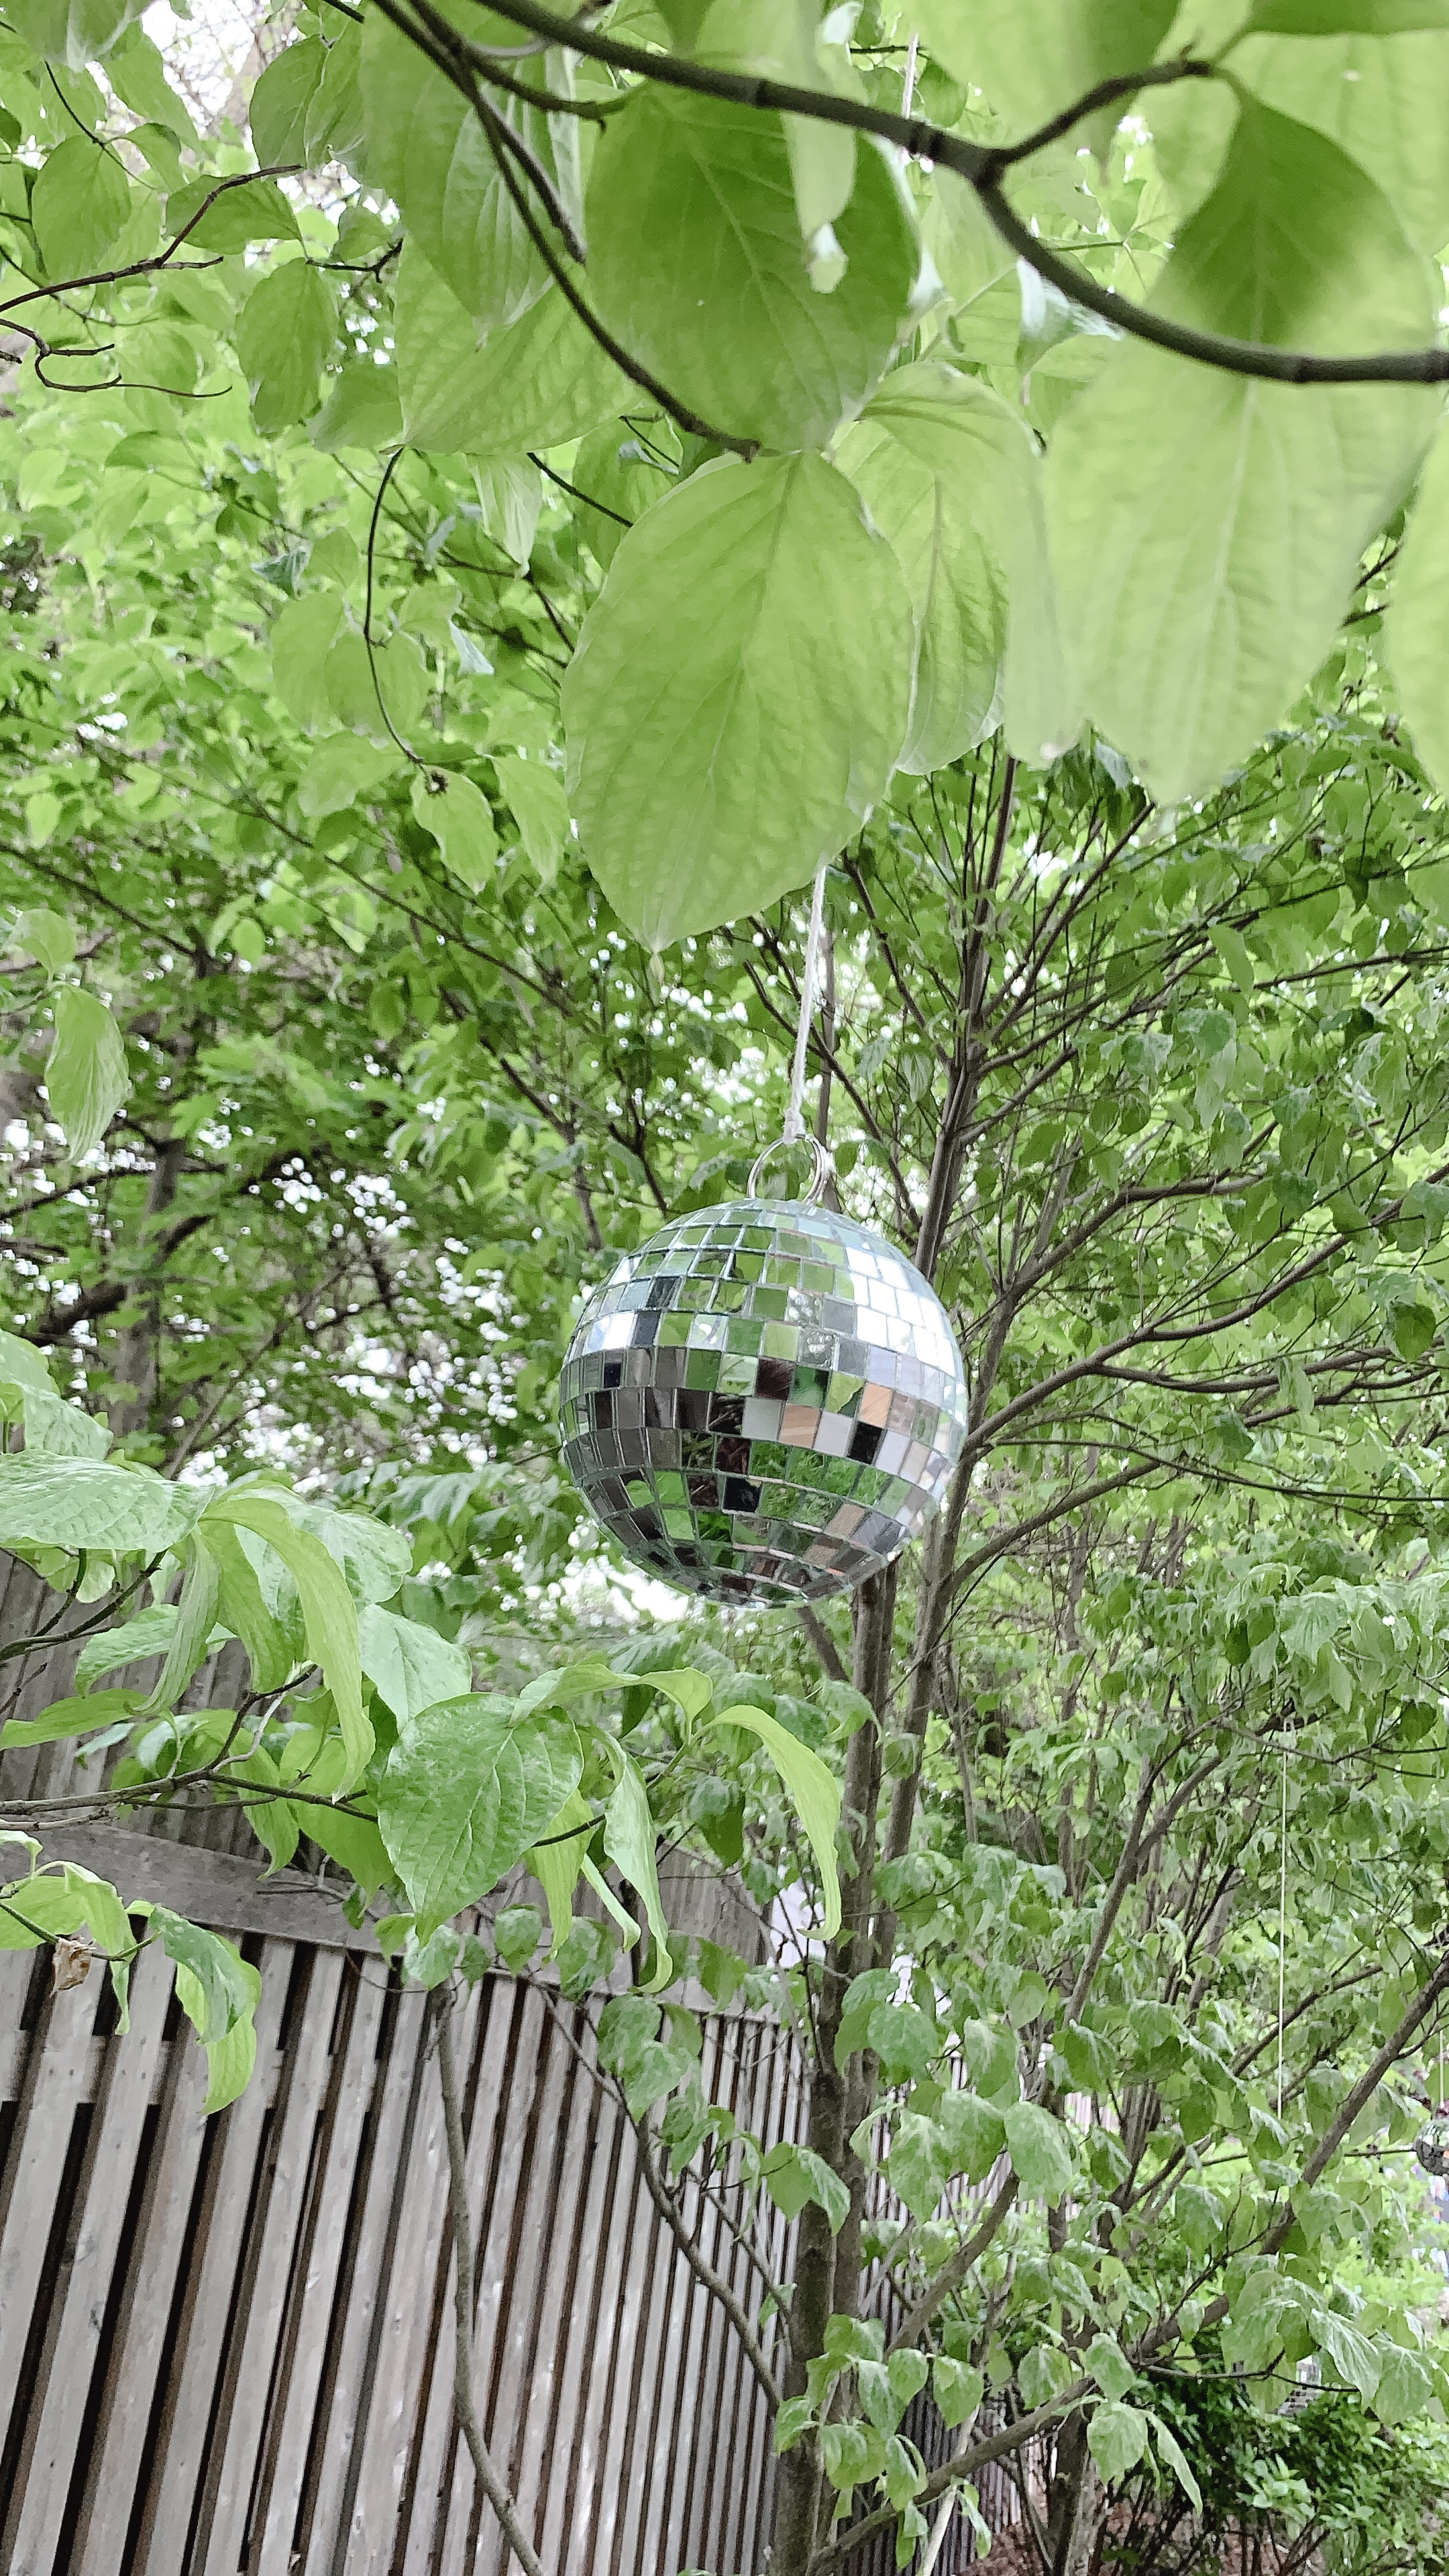 70s-themed-birthday-party-newton-ma-disco-ball-decor-daylynn-designs